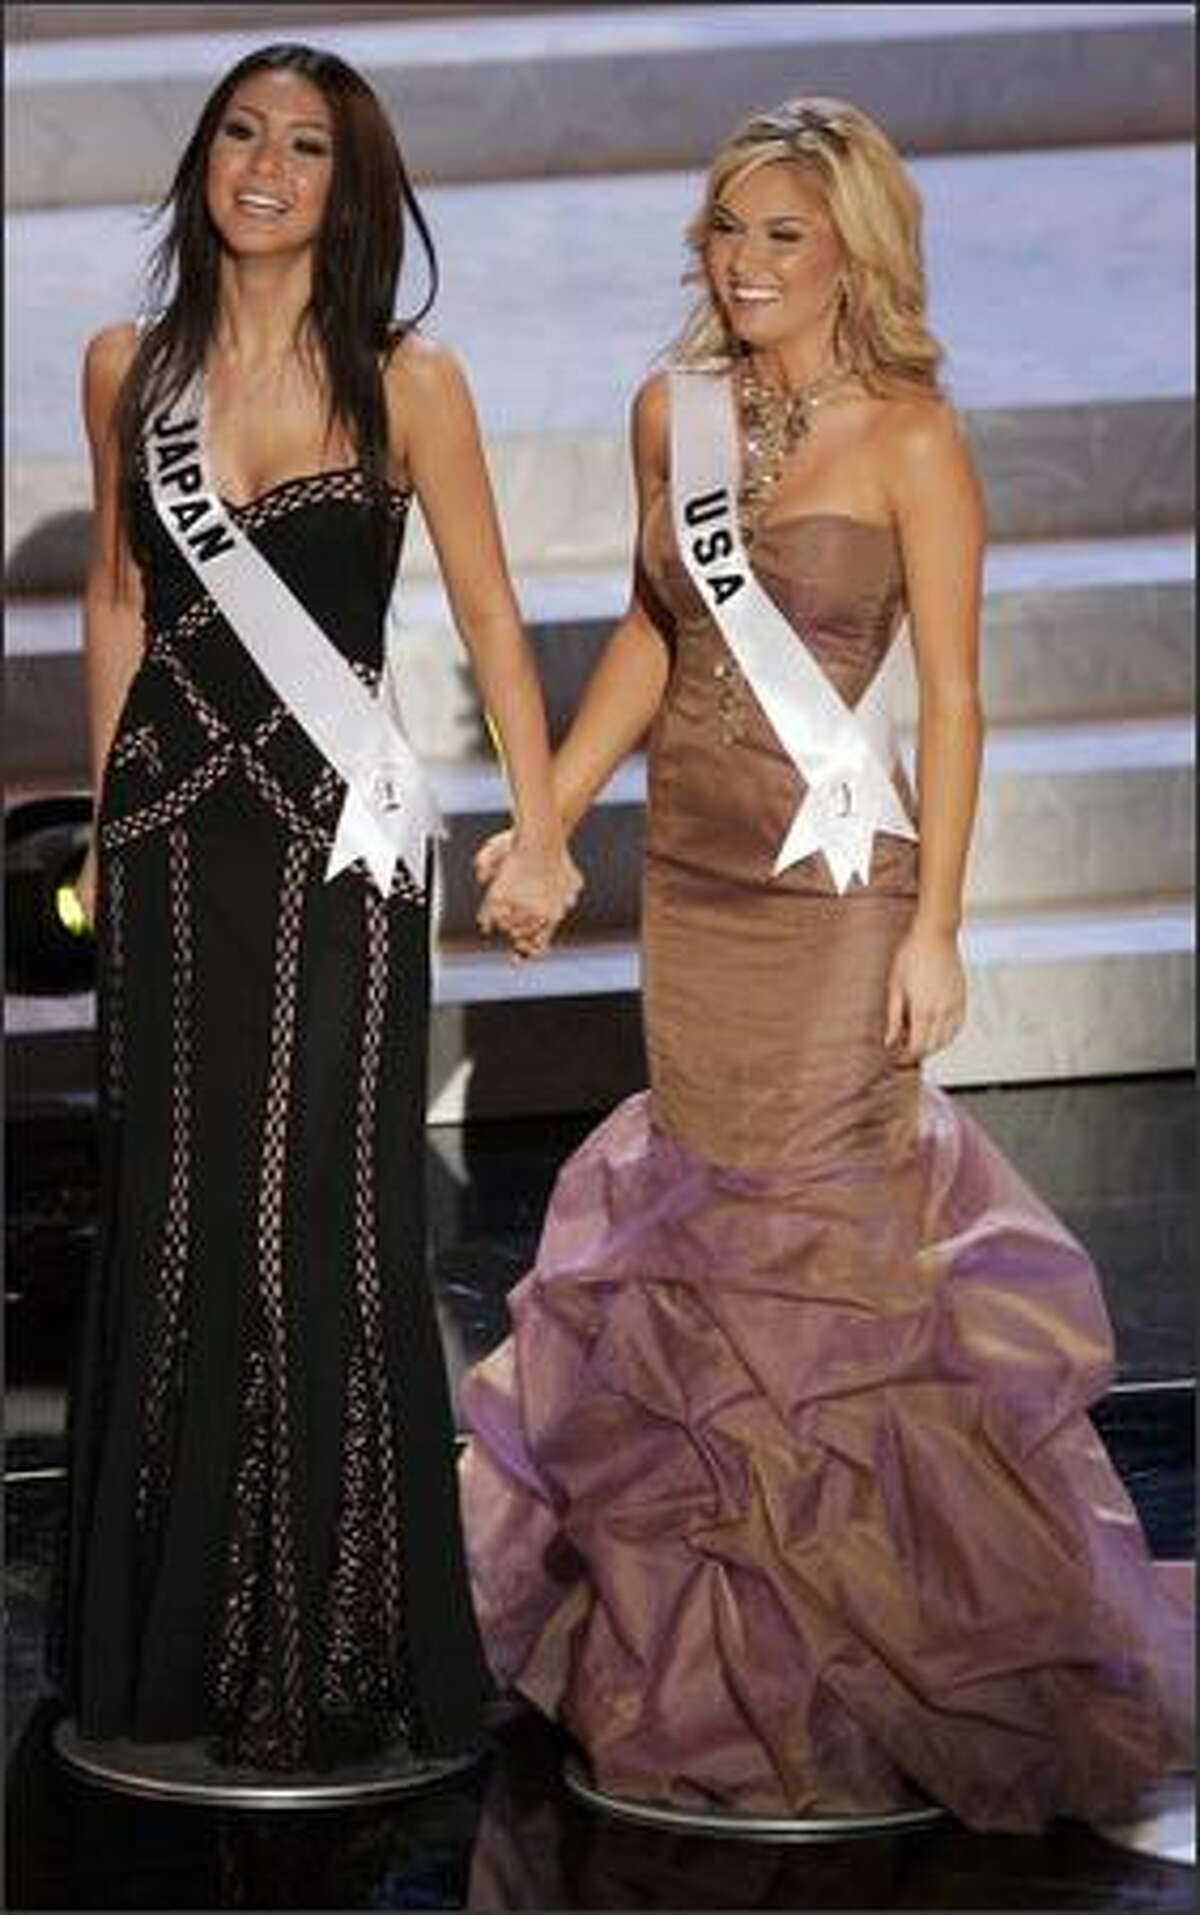 Finalists Kurara Chibana, Miss Japan, left, holds hands with Tara Conner, Miss USA, during the Miss Universe 2006 pageant.